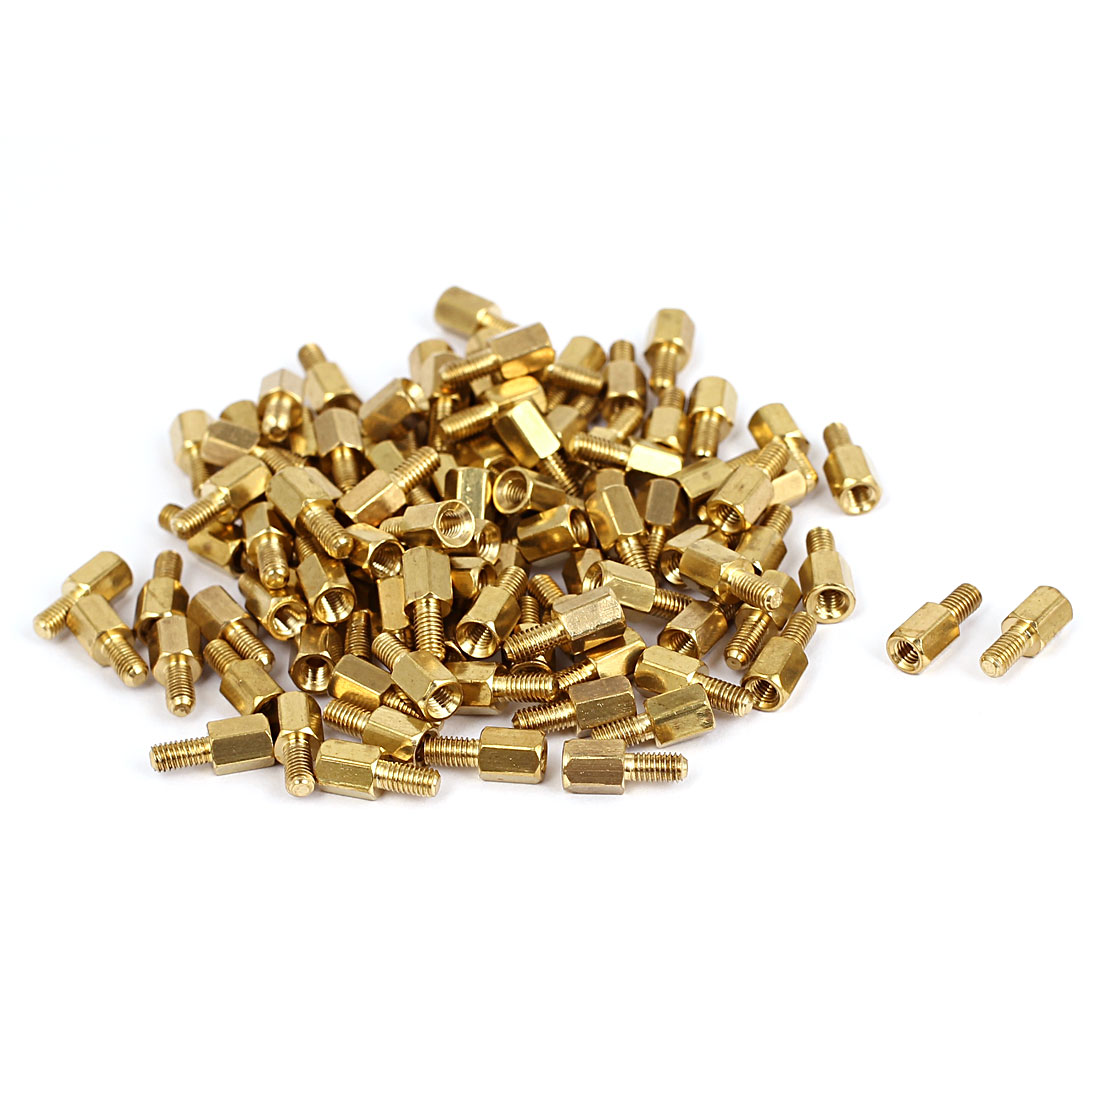 100 Pcs M3x5mm+6mm Female Male Threaded Brass Hex Standoff Spacer for Motherboard